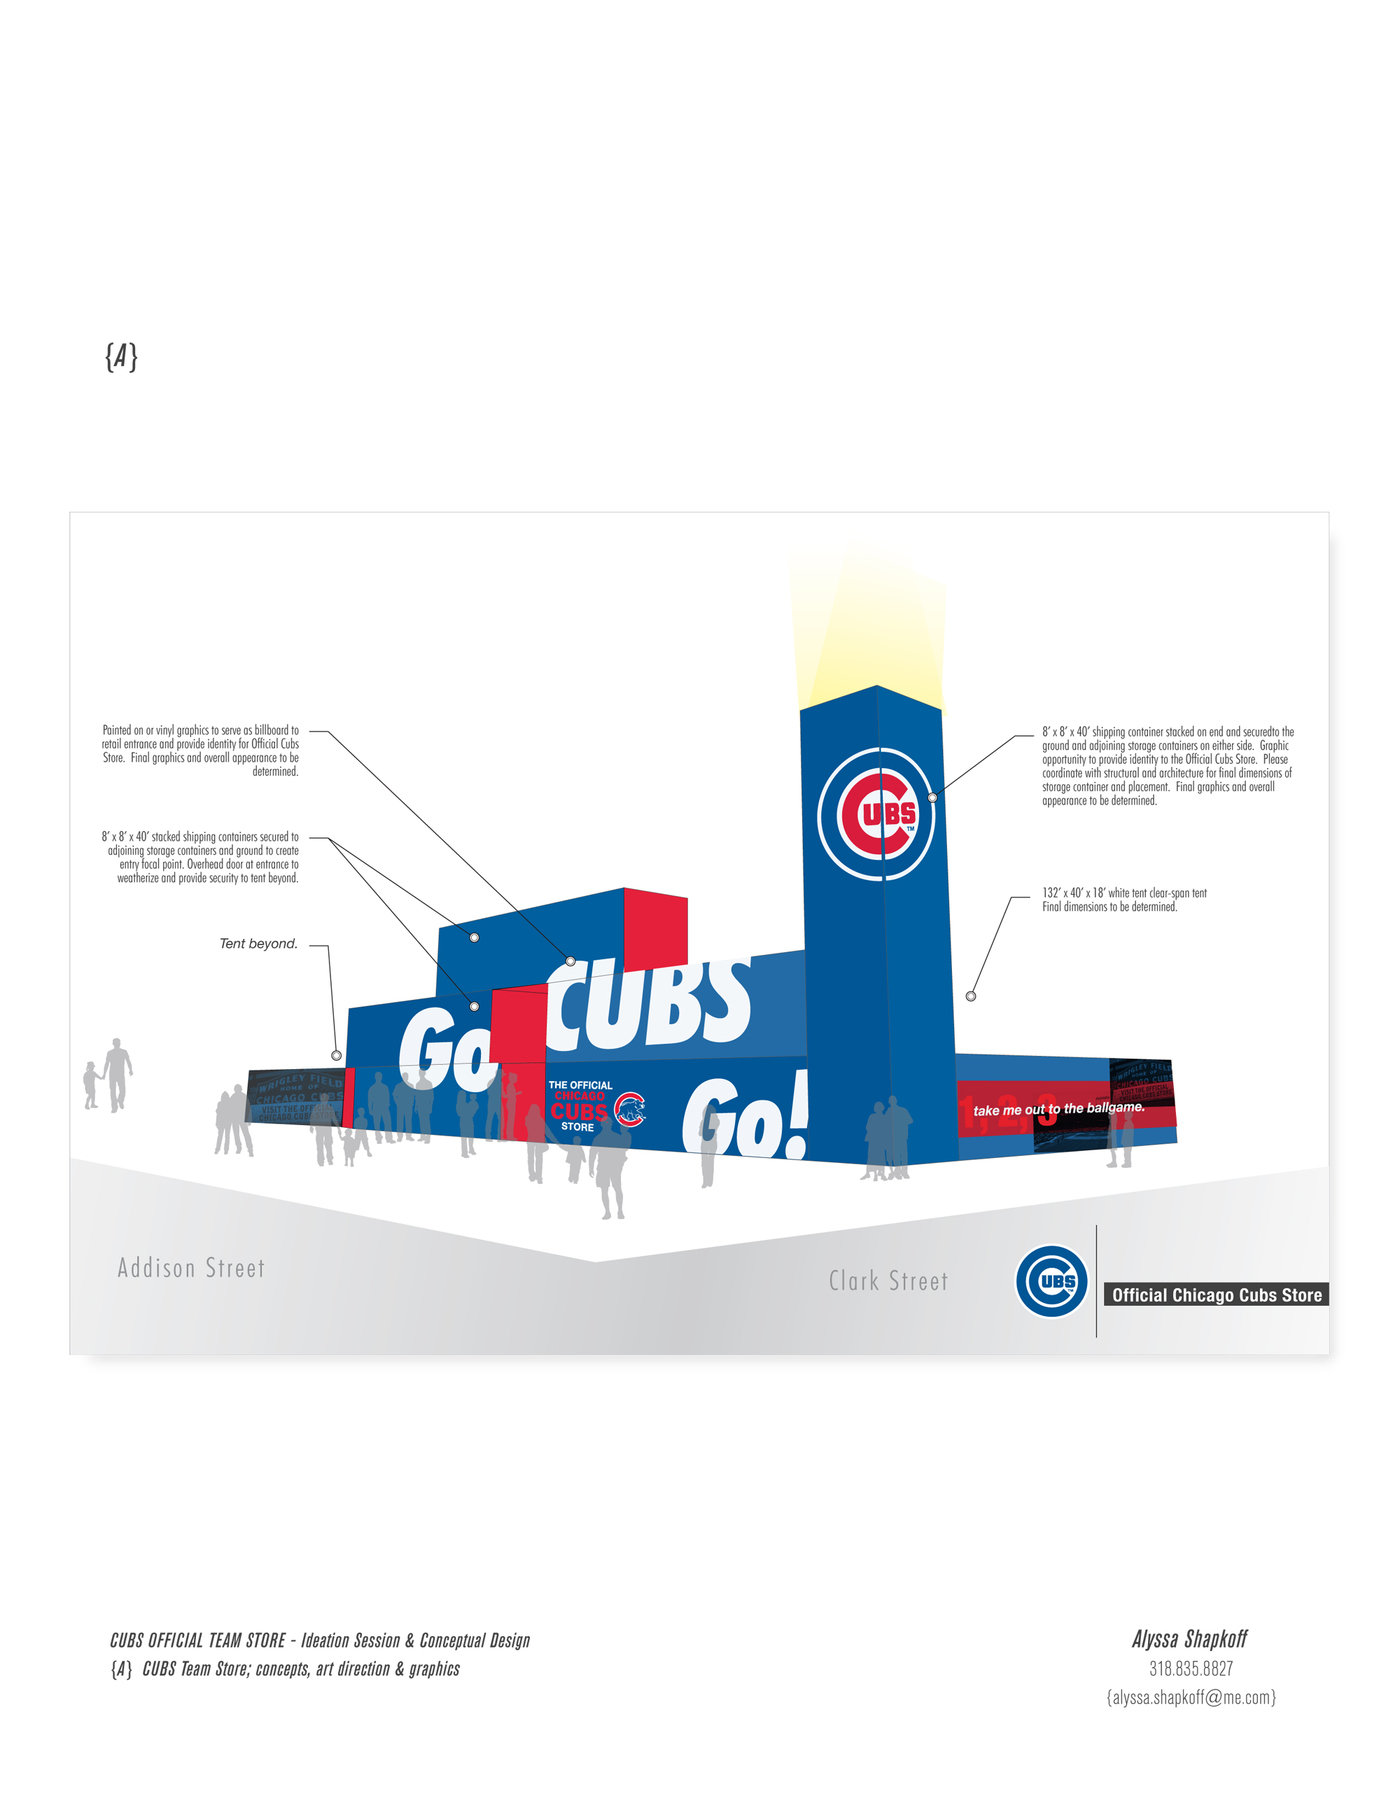 free shipping af37f 28b79 The Chicago Cubs by Alyssa Shapkoff at Coroflot.com